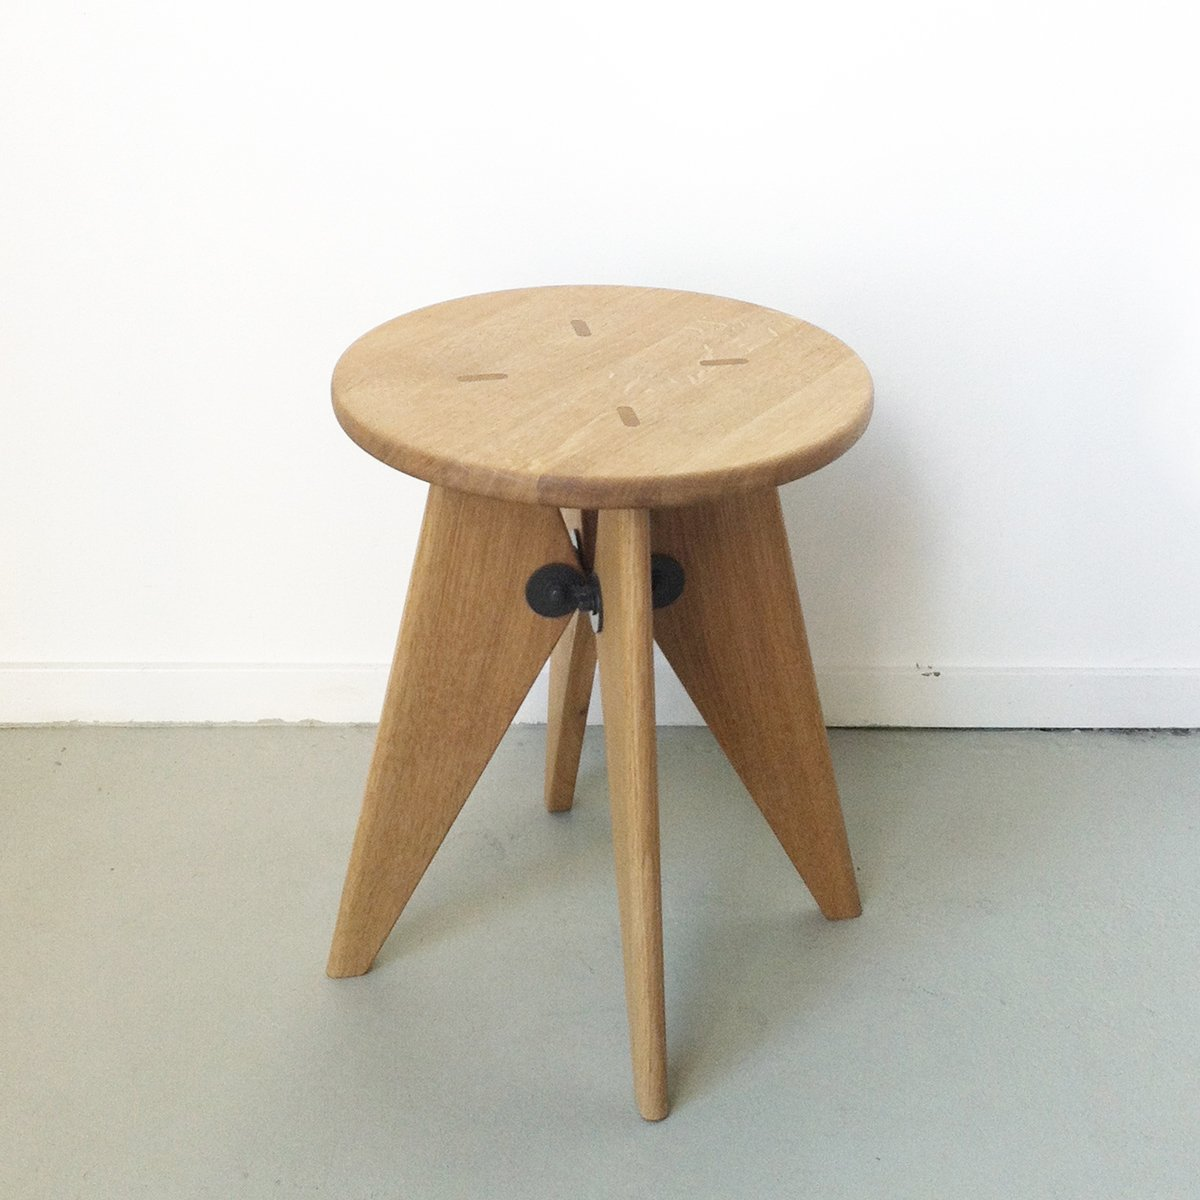 Tabouret solvay stool by jean prouv for vitra for sale at pamono - Tabouret jean prouve ...